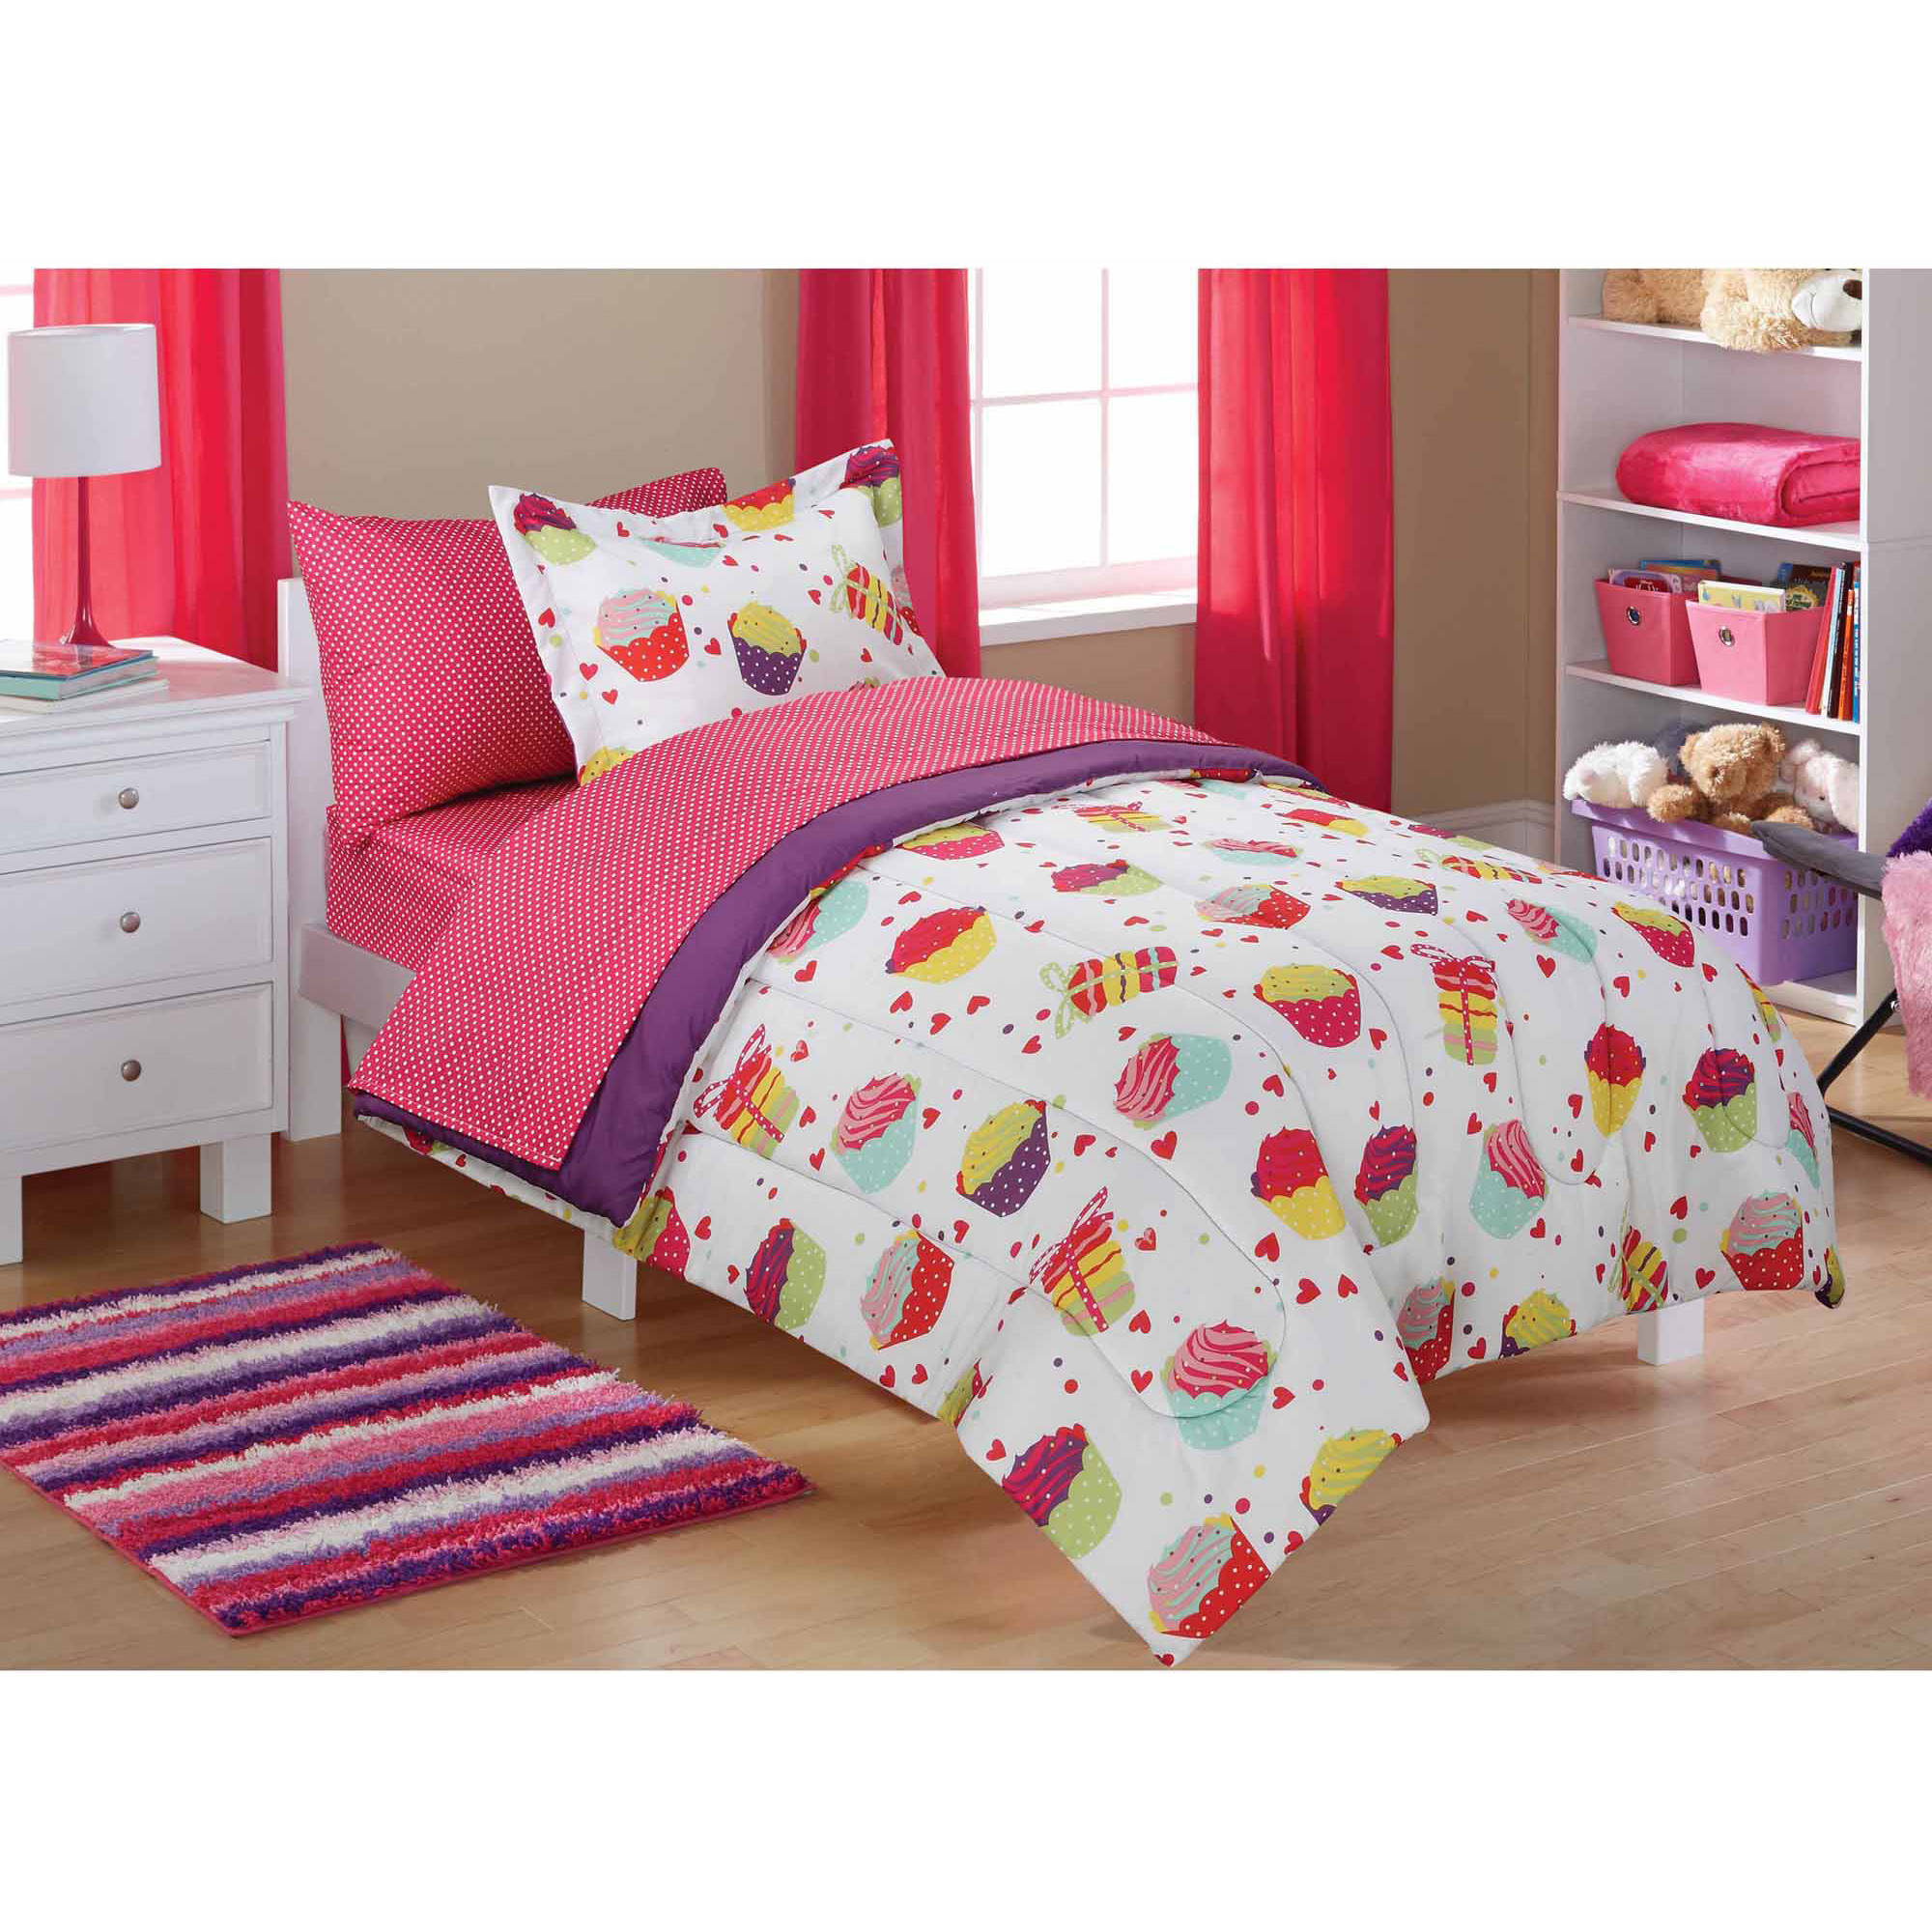 Kids Queen Bed Mainstays Kids Cupcake Coordinated Bed In A Bag